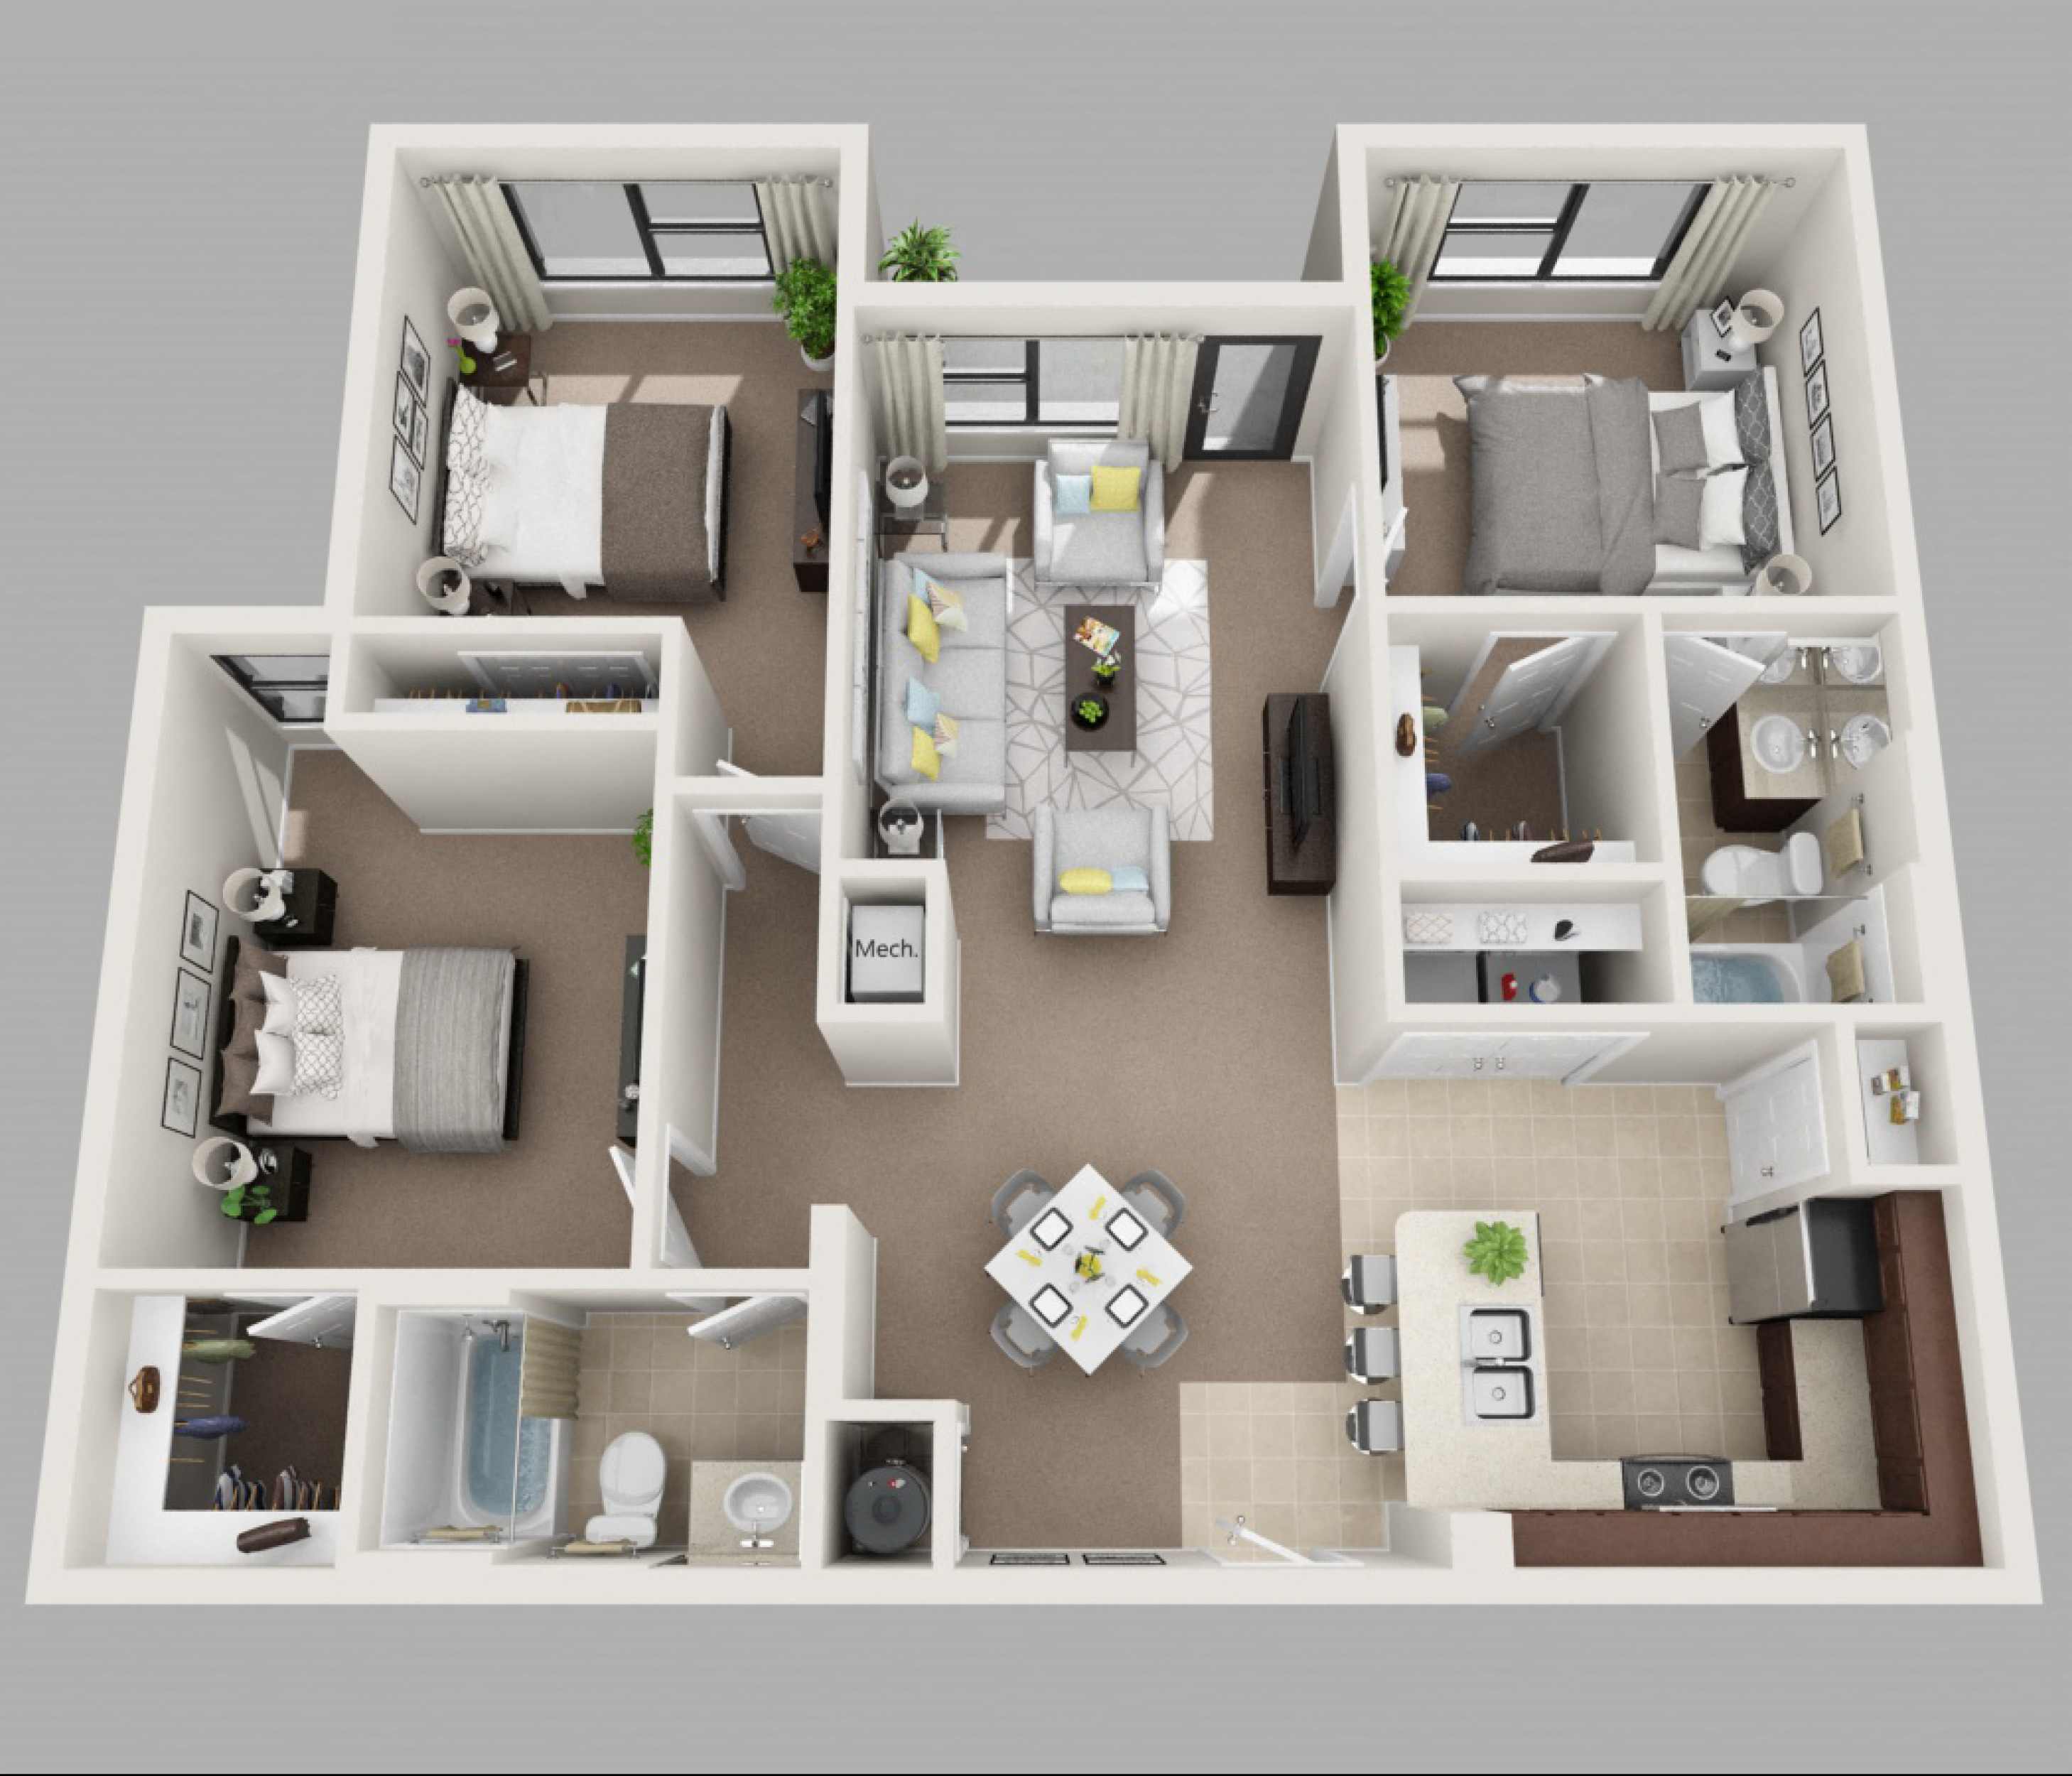 20 Bedroom House For Rent: Floor Plans Of Amelia Court In Orlando, FL